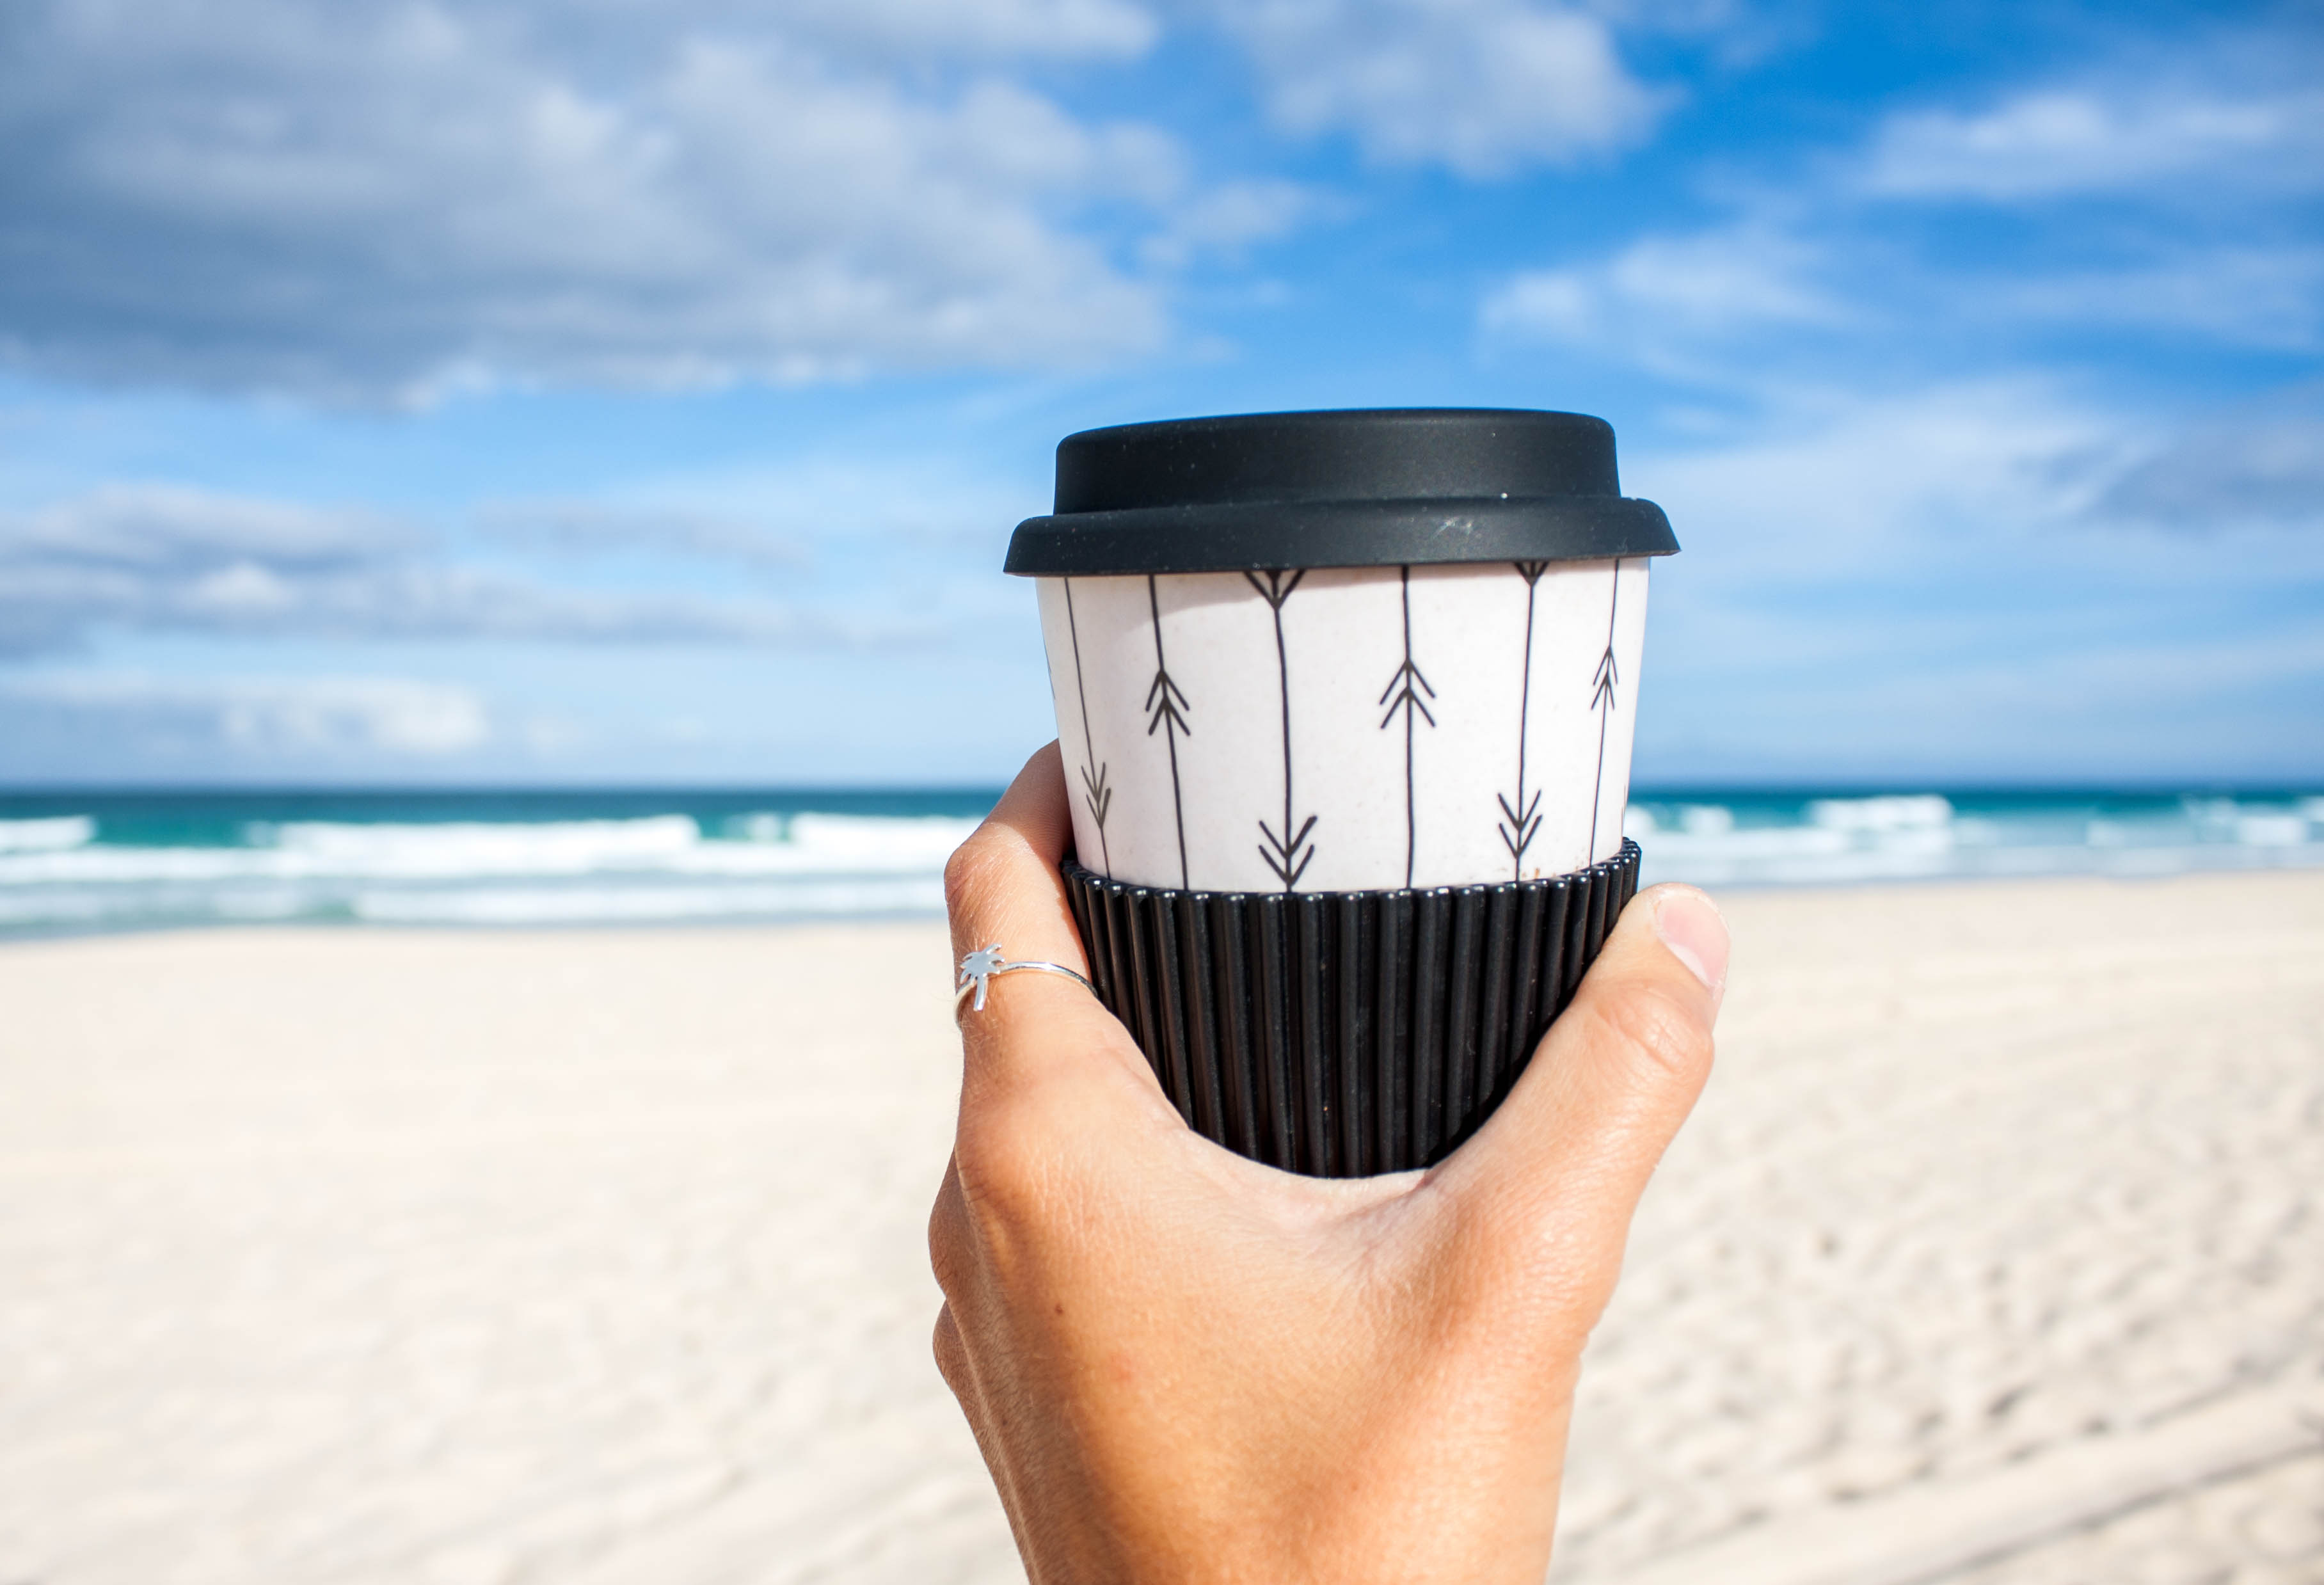 Where to Get Coffee While on Vacation